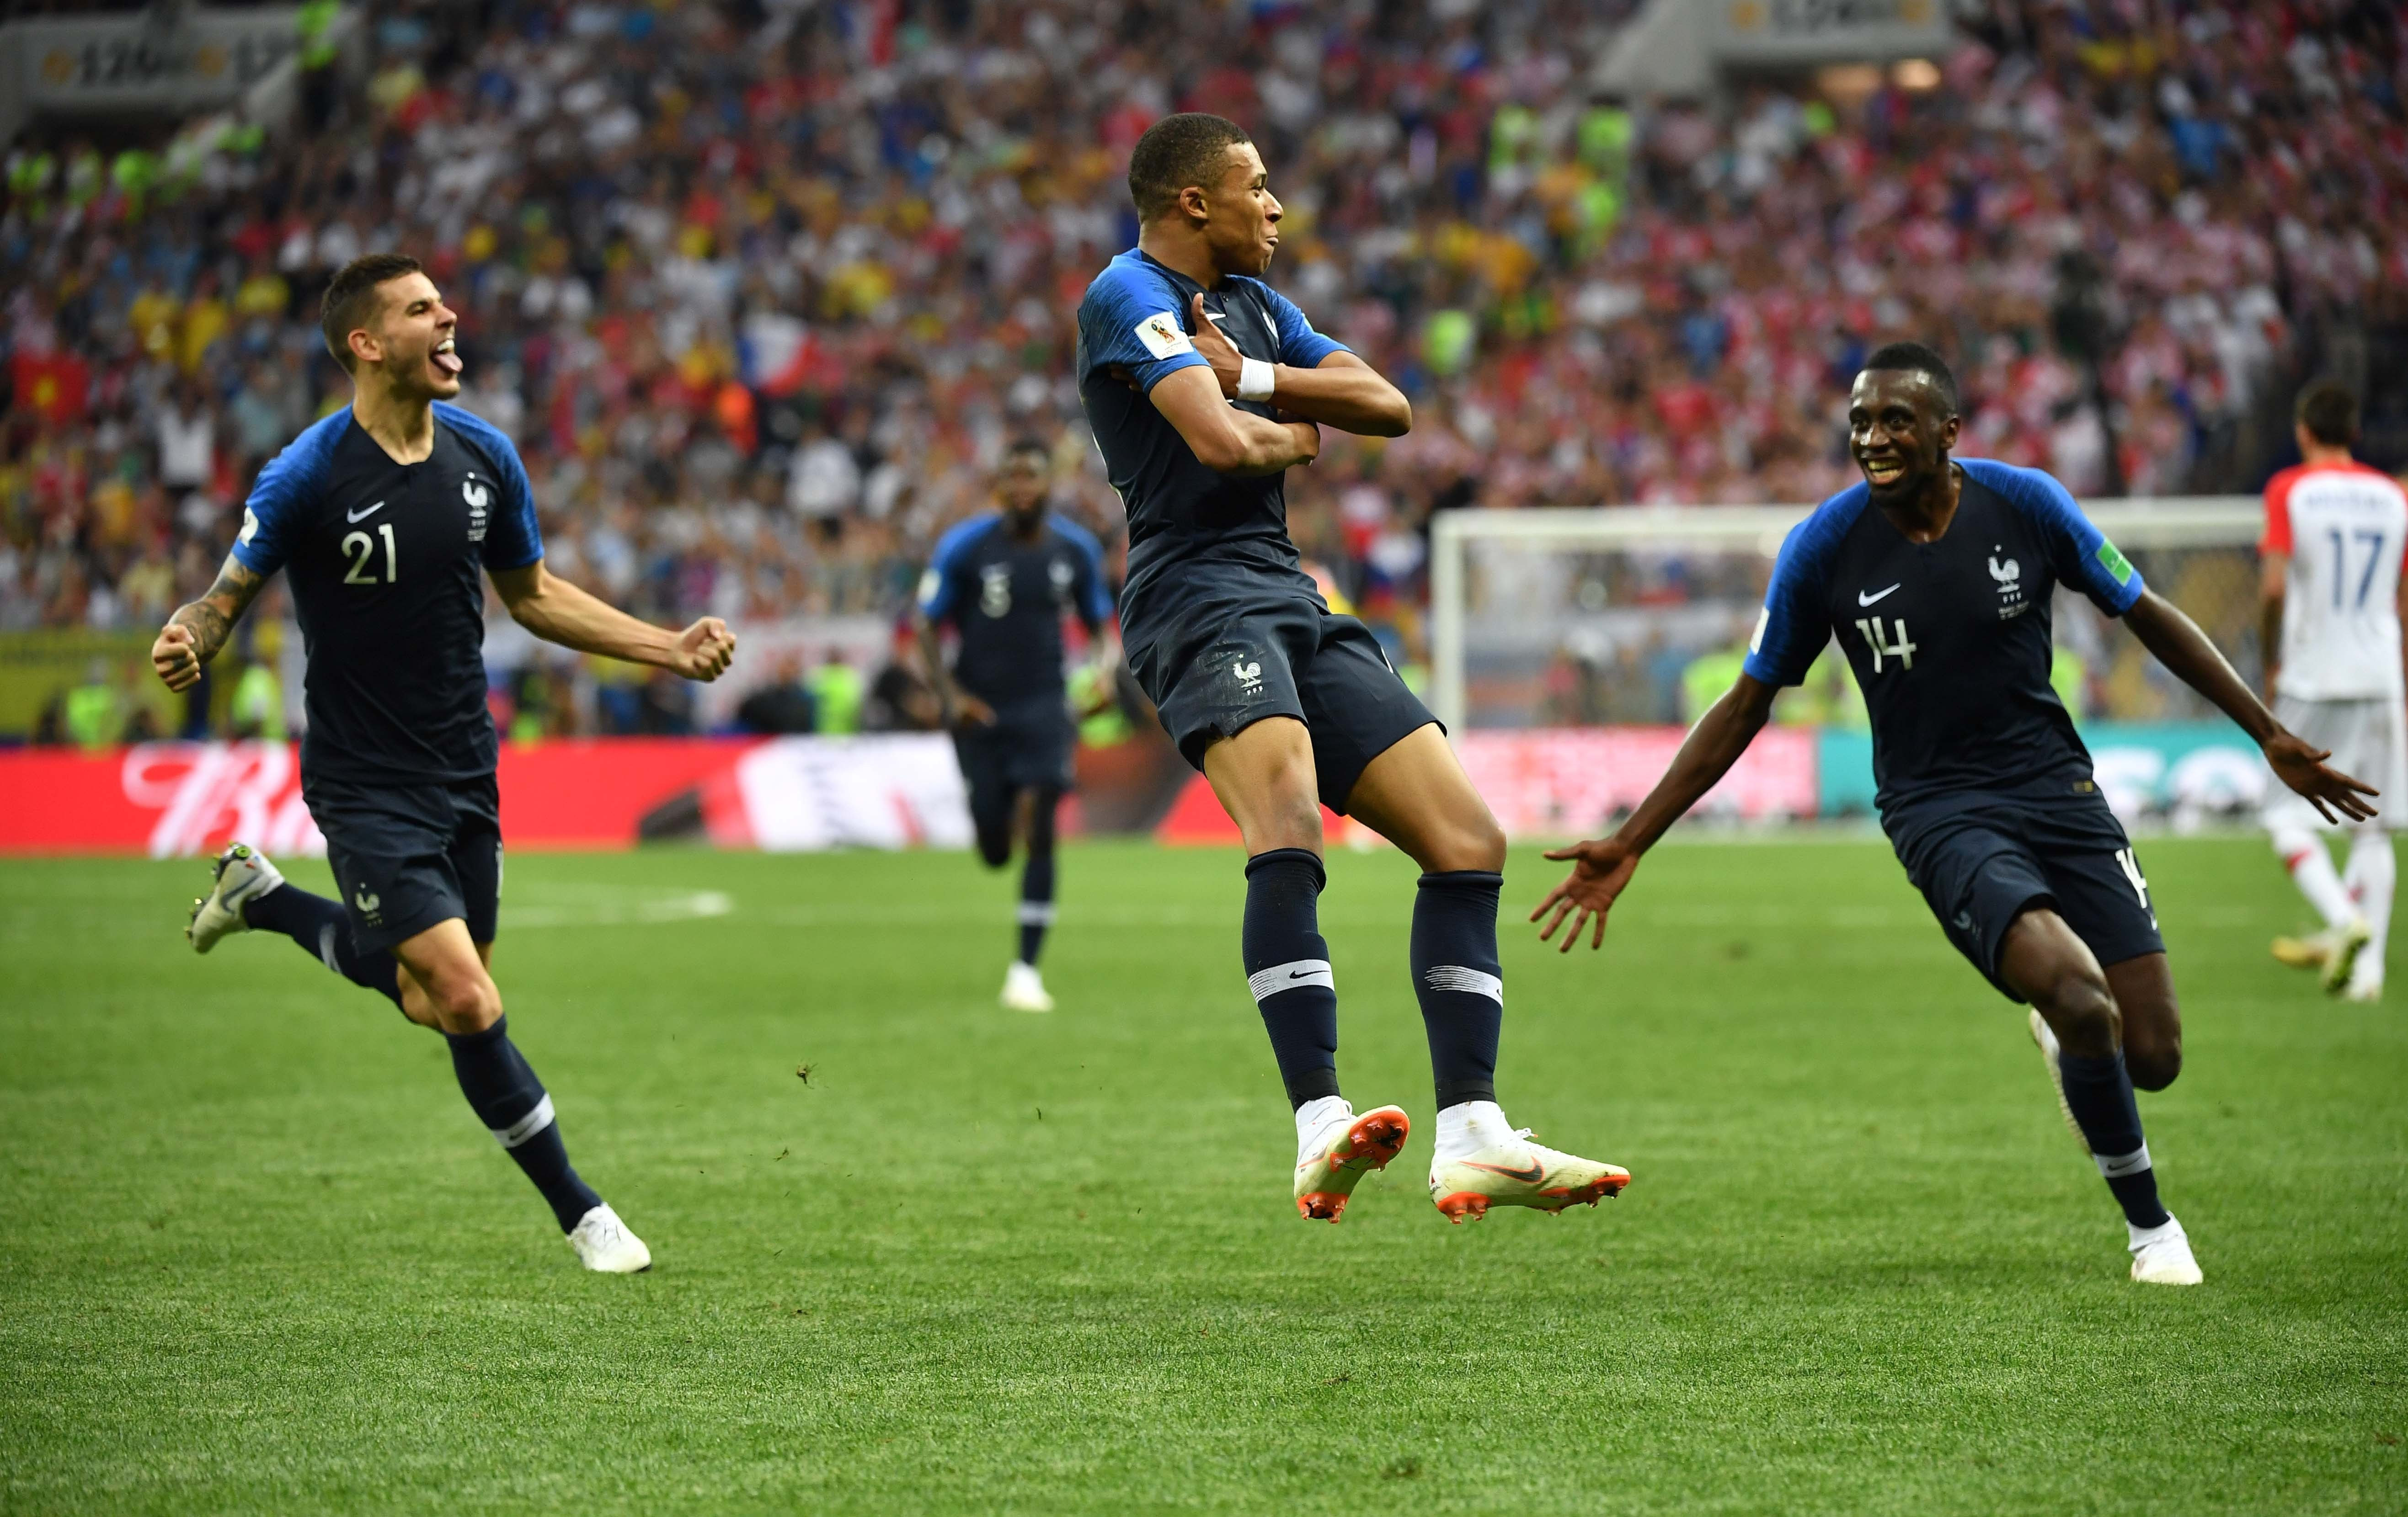 Mbappe donates $500,000 WC winnings to charity